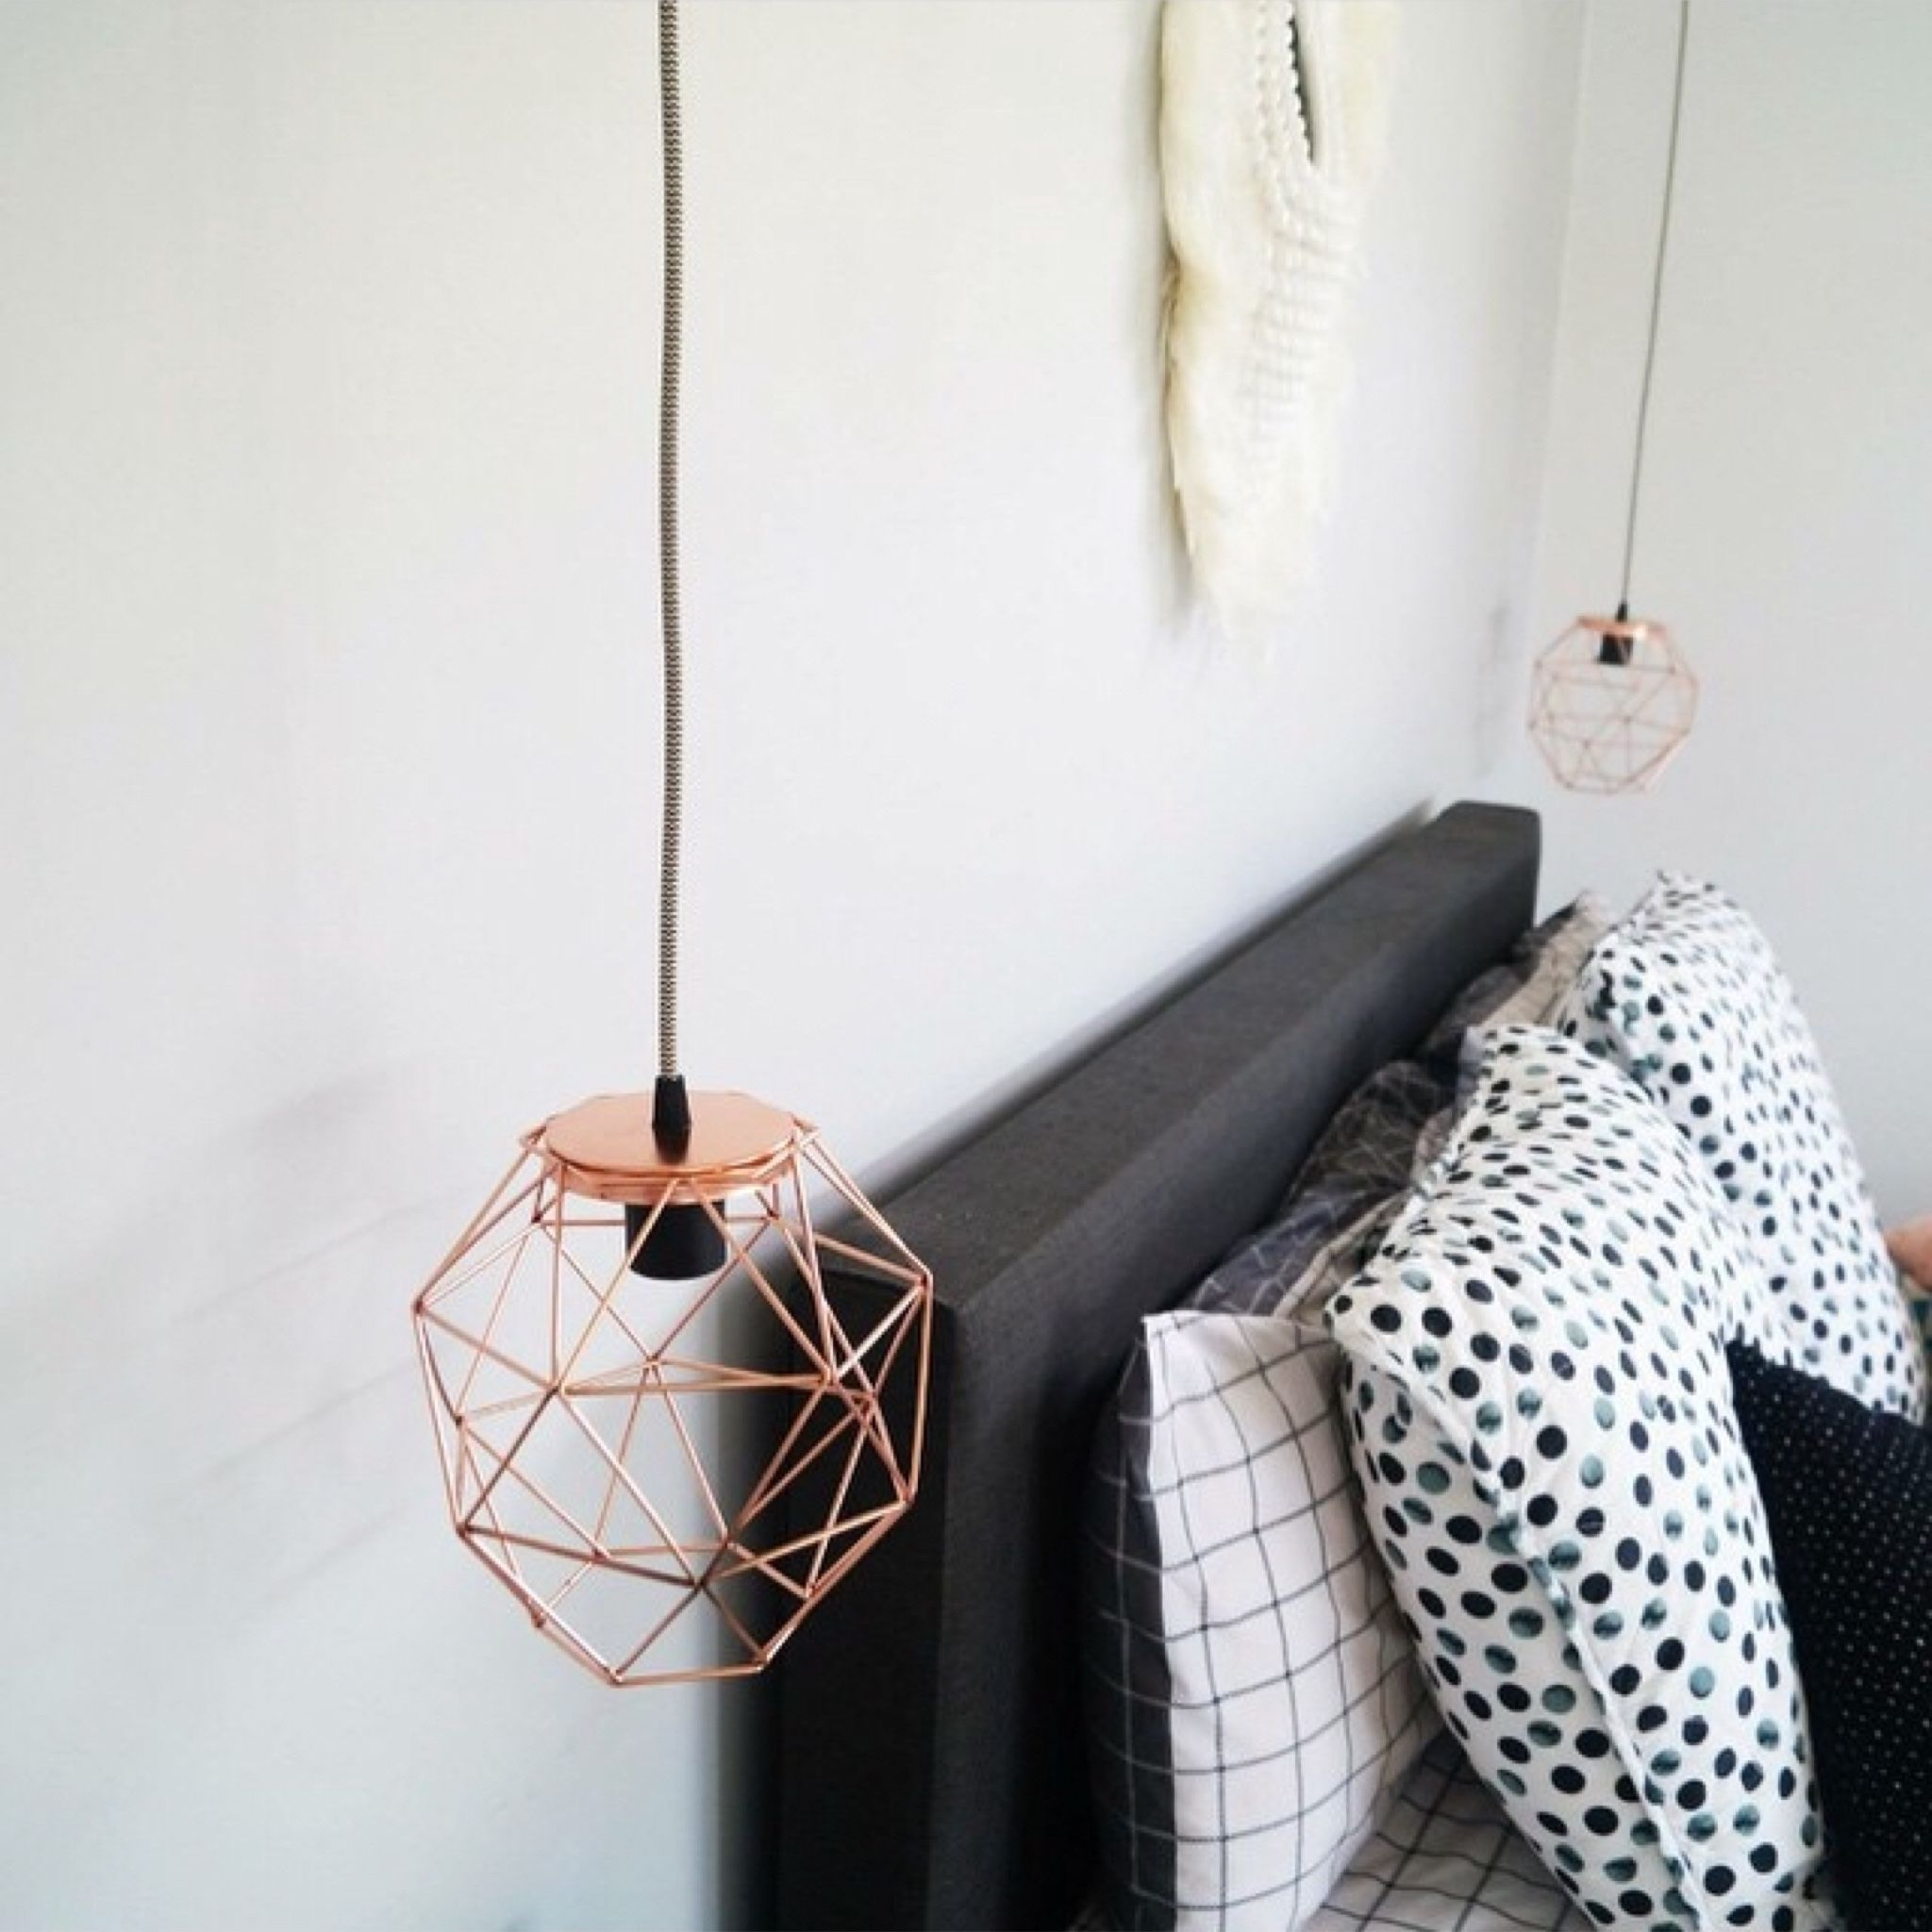 Pendant Light Kmart: The Kmart Copper Geo Candle Holder Repurposed As A Light